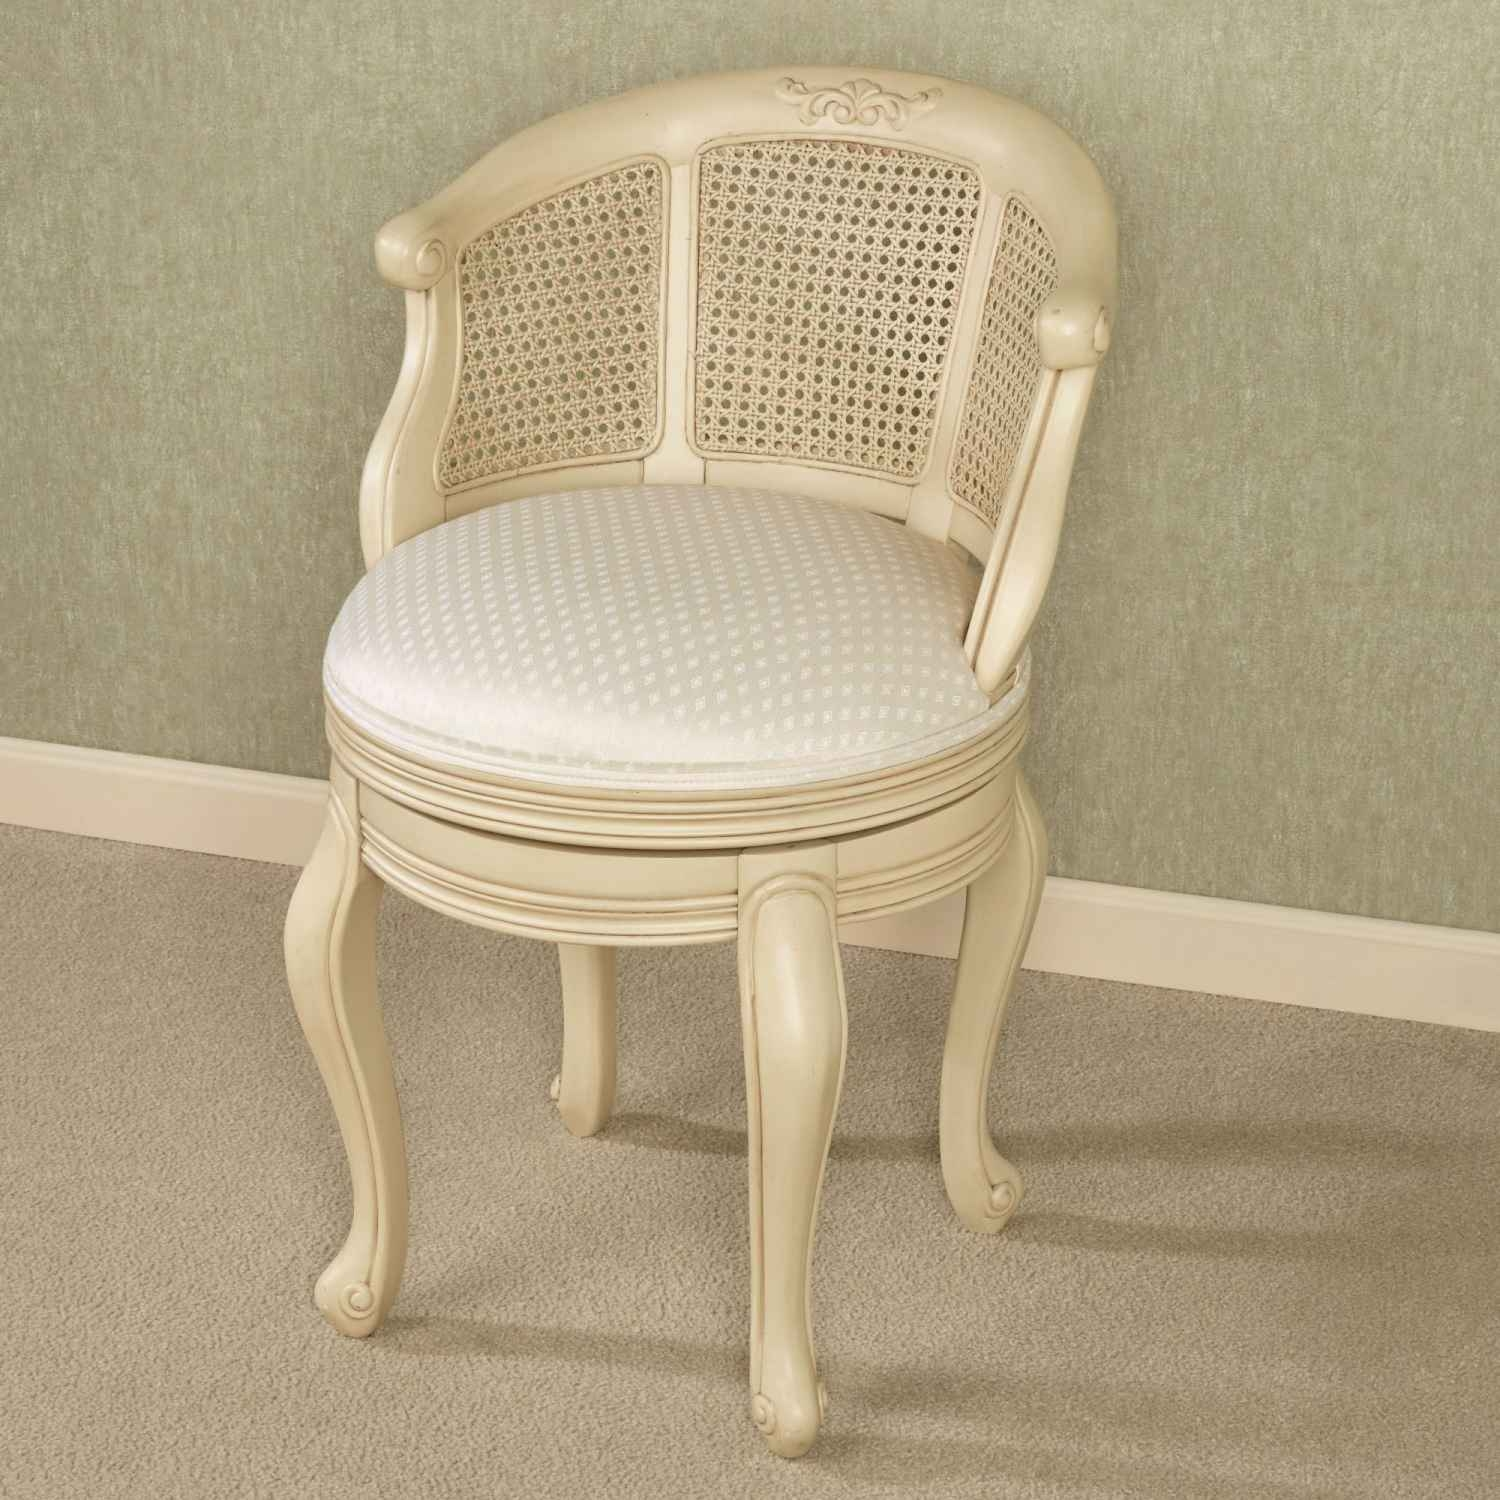 Bed Bath And Beyond Bathroom Vanity Chairs